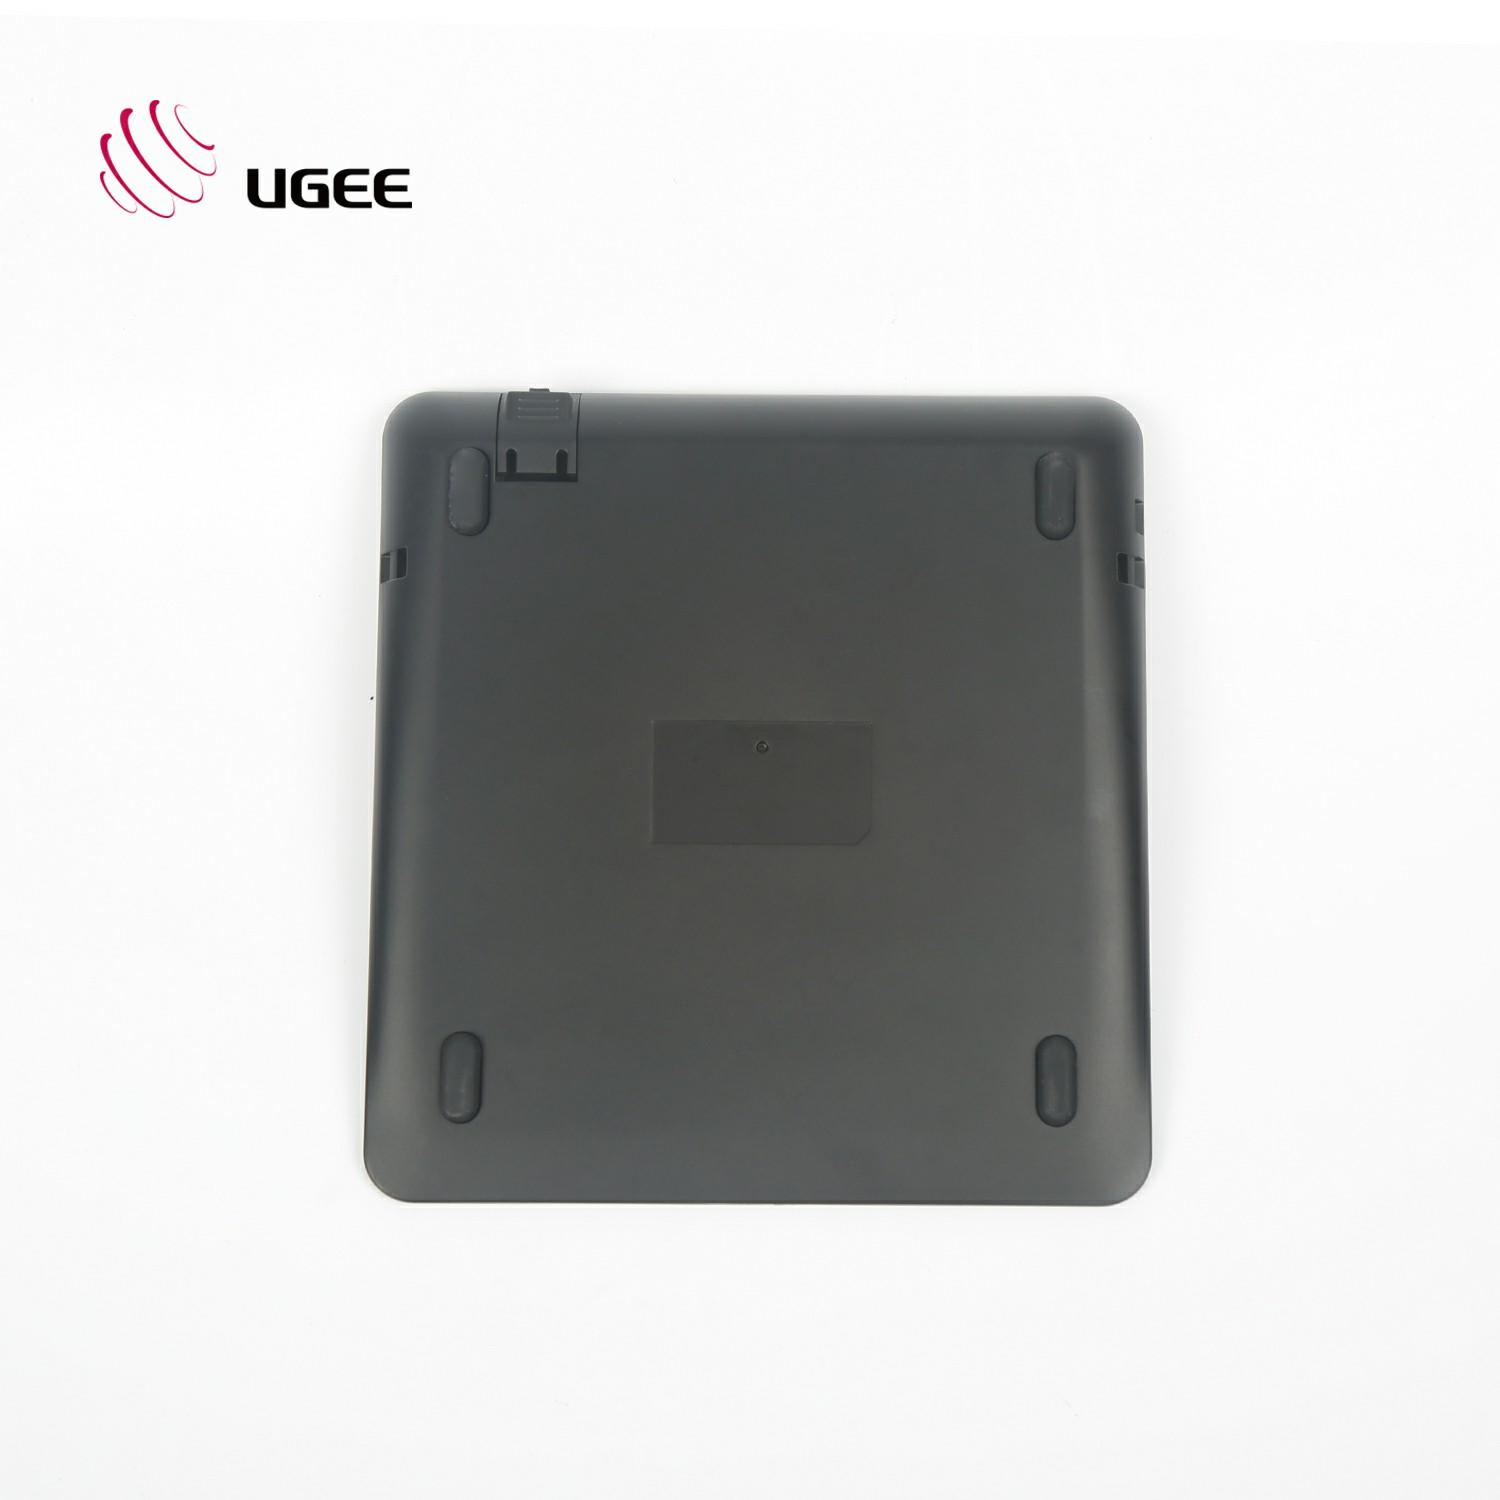 Ugee-Android Graphic Handwriting Tablet Usb Ugee Company | Factory-1